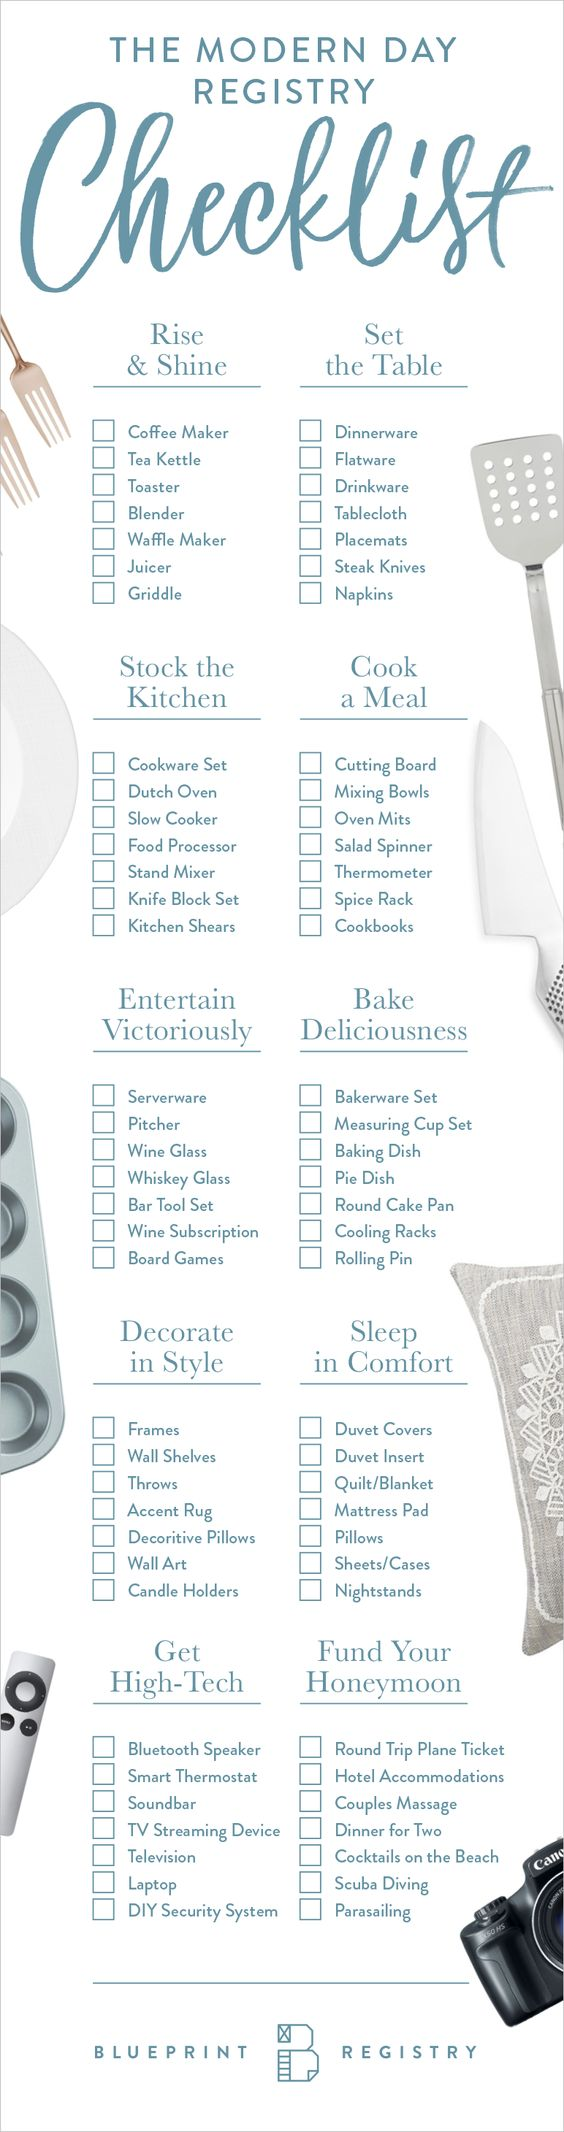 Engagementdiaries Wedding Registry Etiquette Lucy Myers Events